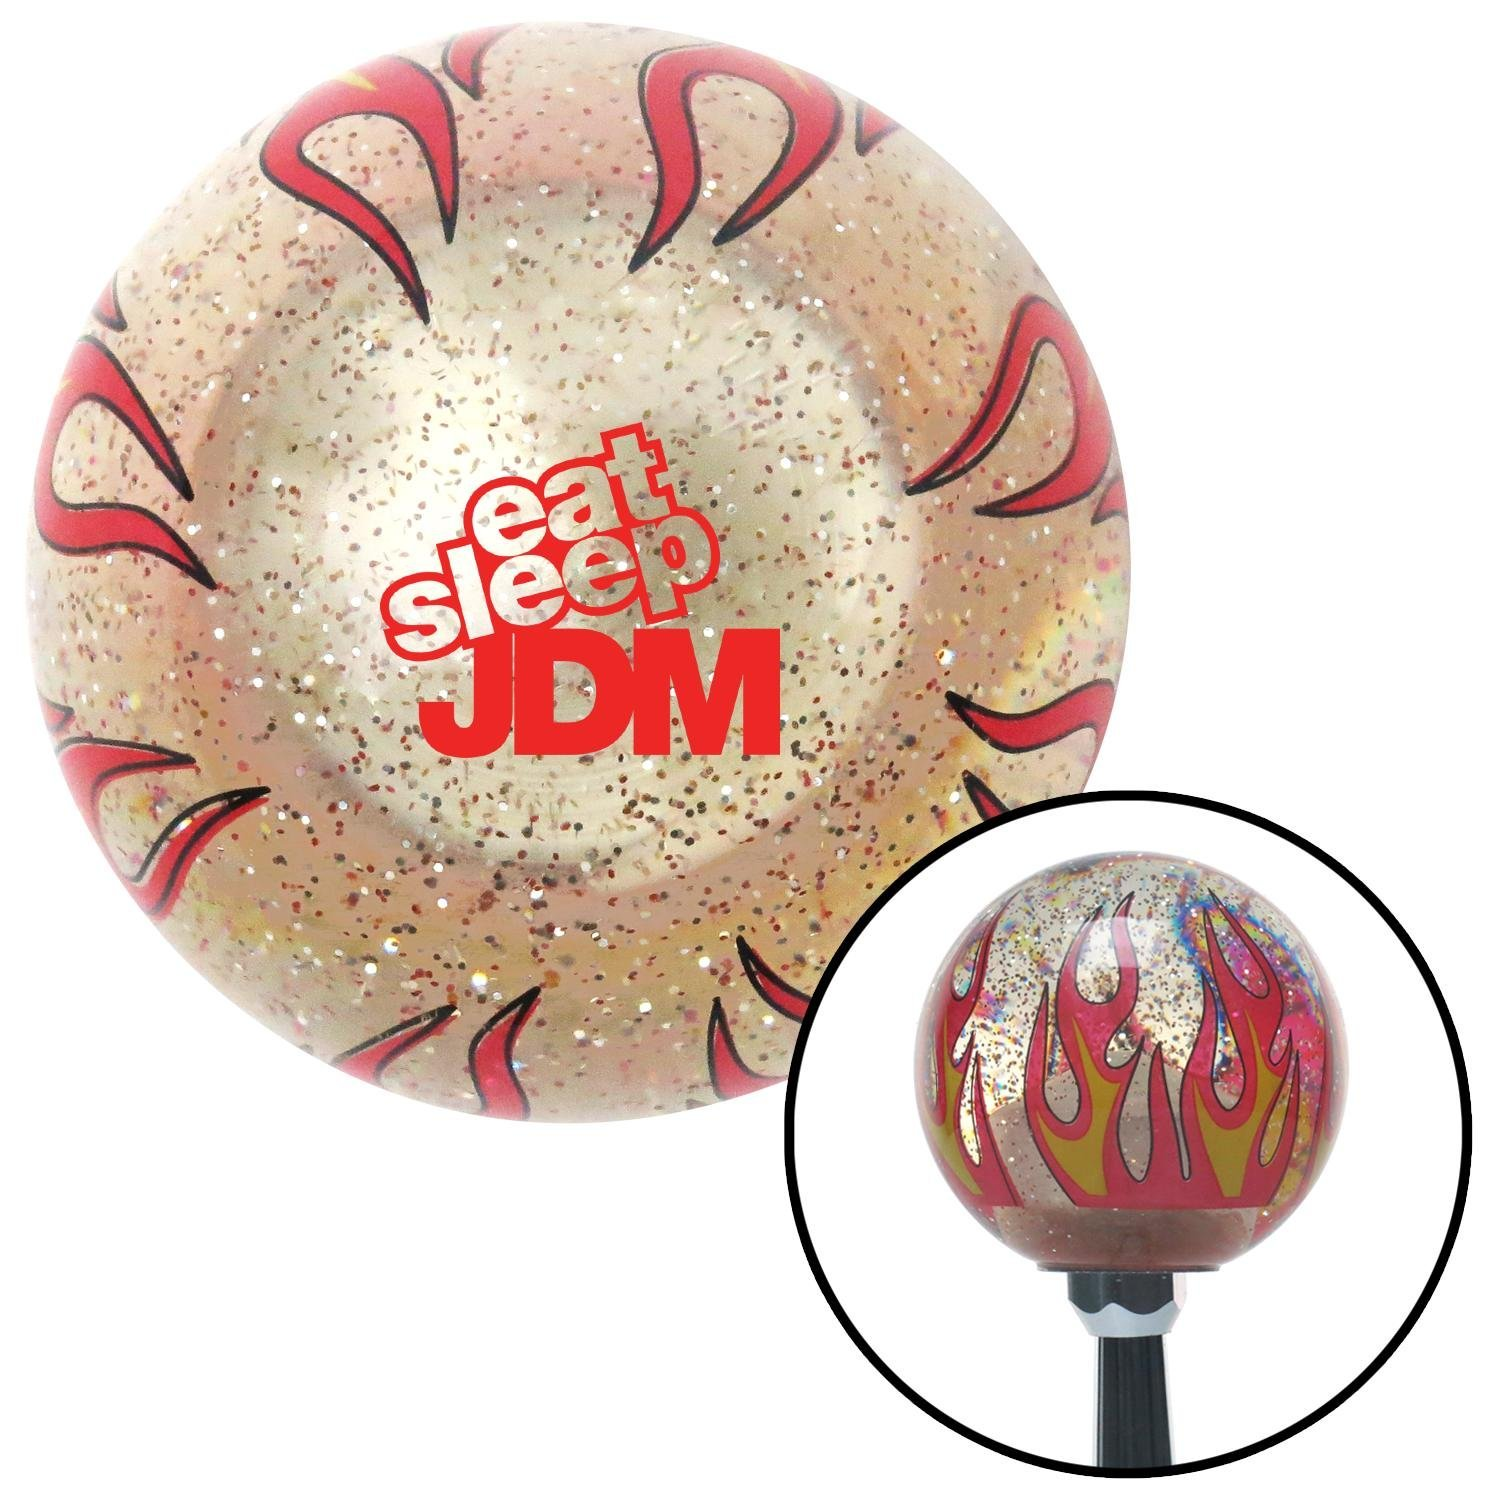 American Shifter 295842 Shift Knob Red Eat Sleep JDM Text Clear Flame Metal Flake with M16 x 1.5 Insert